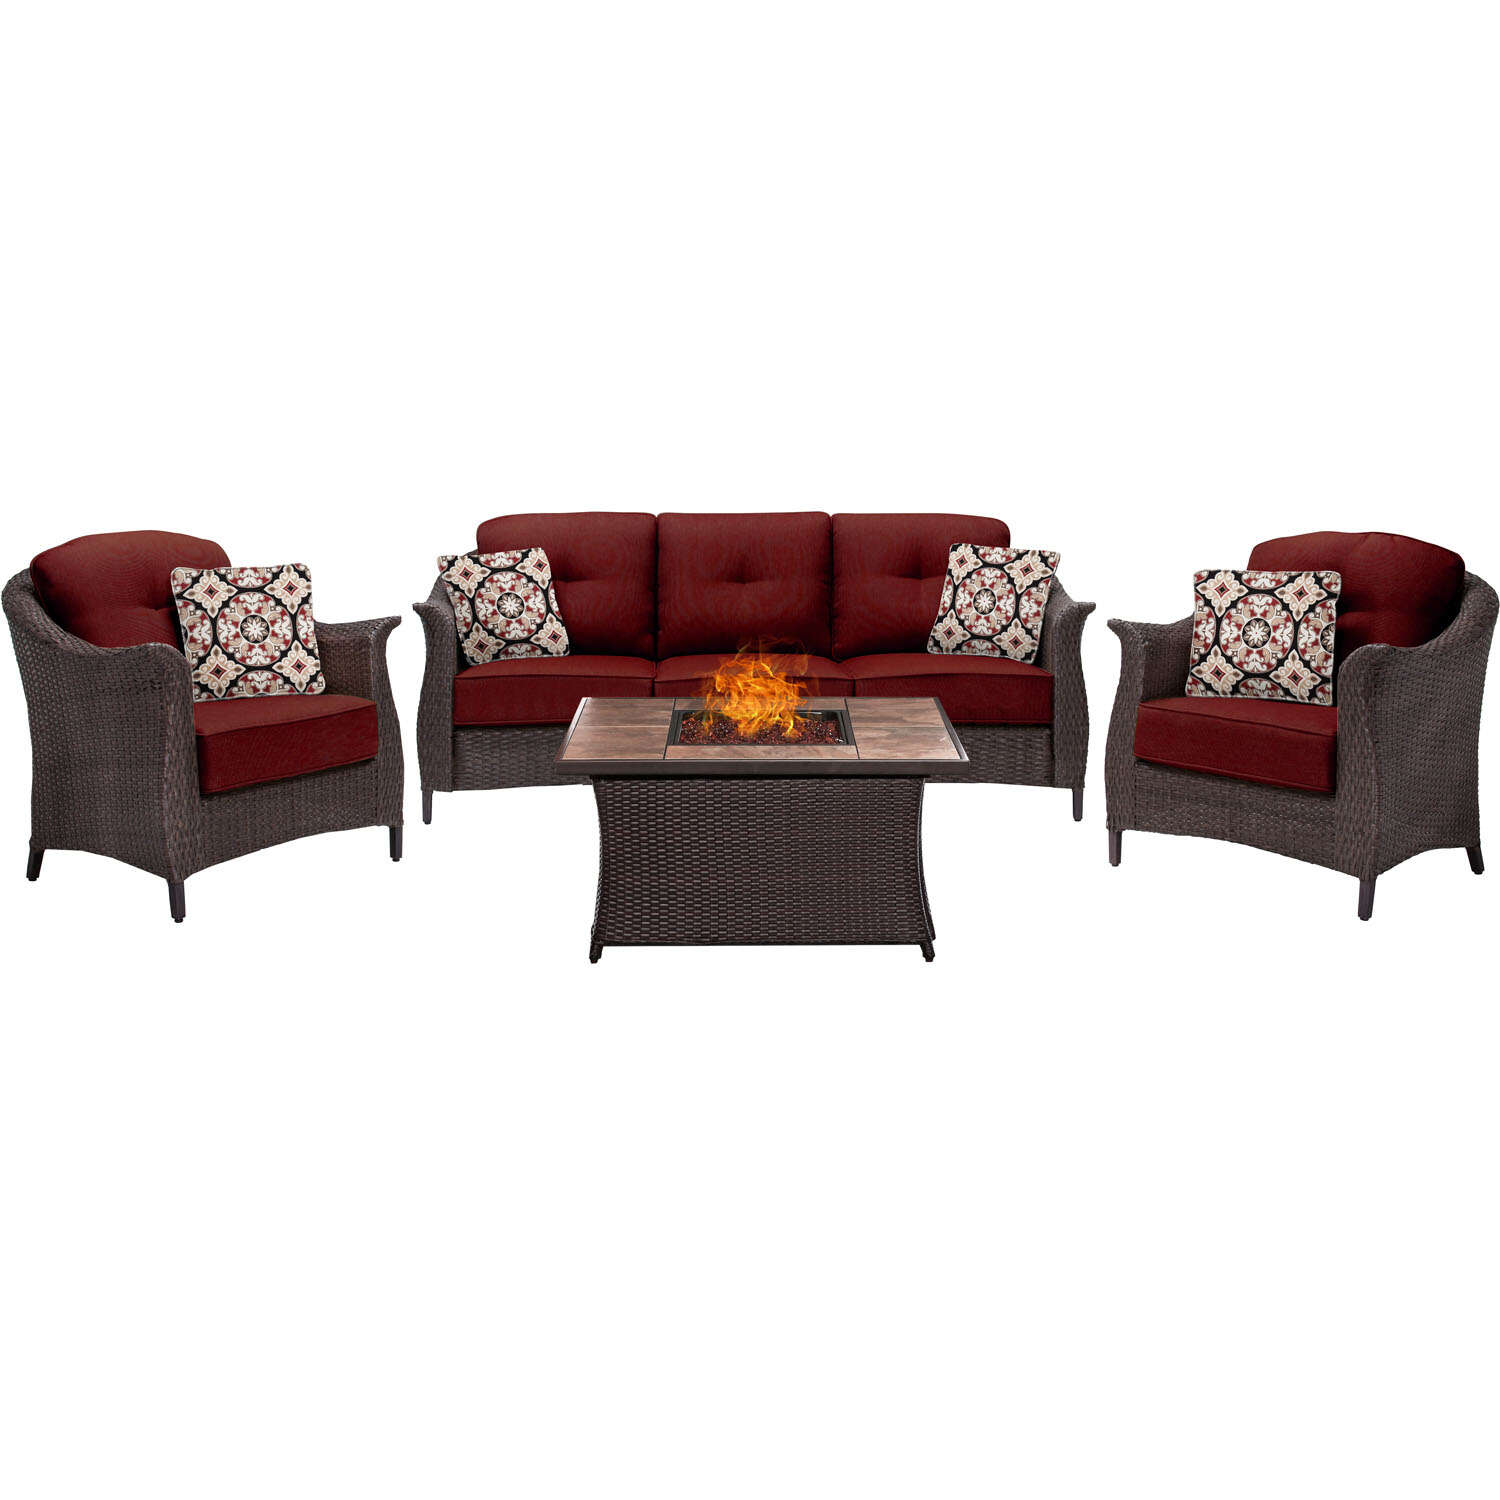 Hanover  Gramercy  4 pc. Java  Steel  Firepit Set  Red